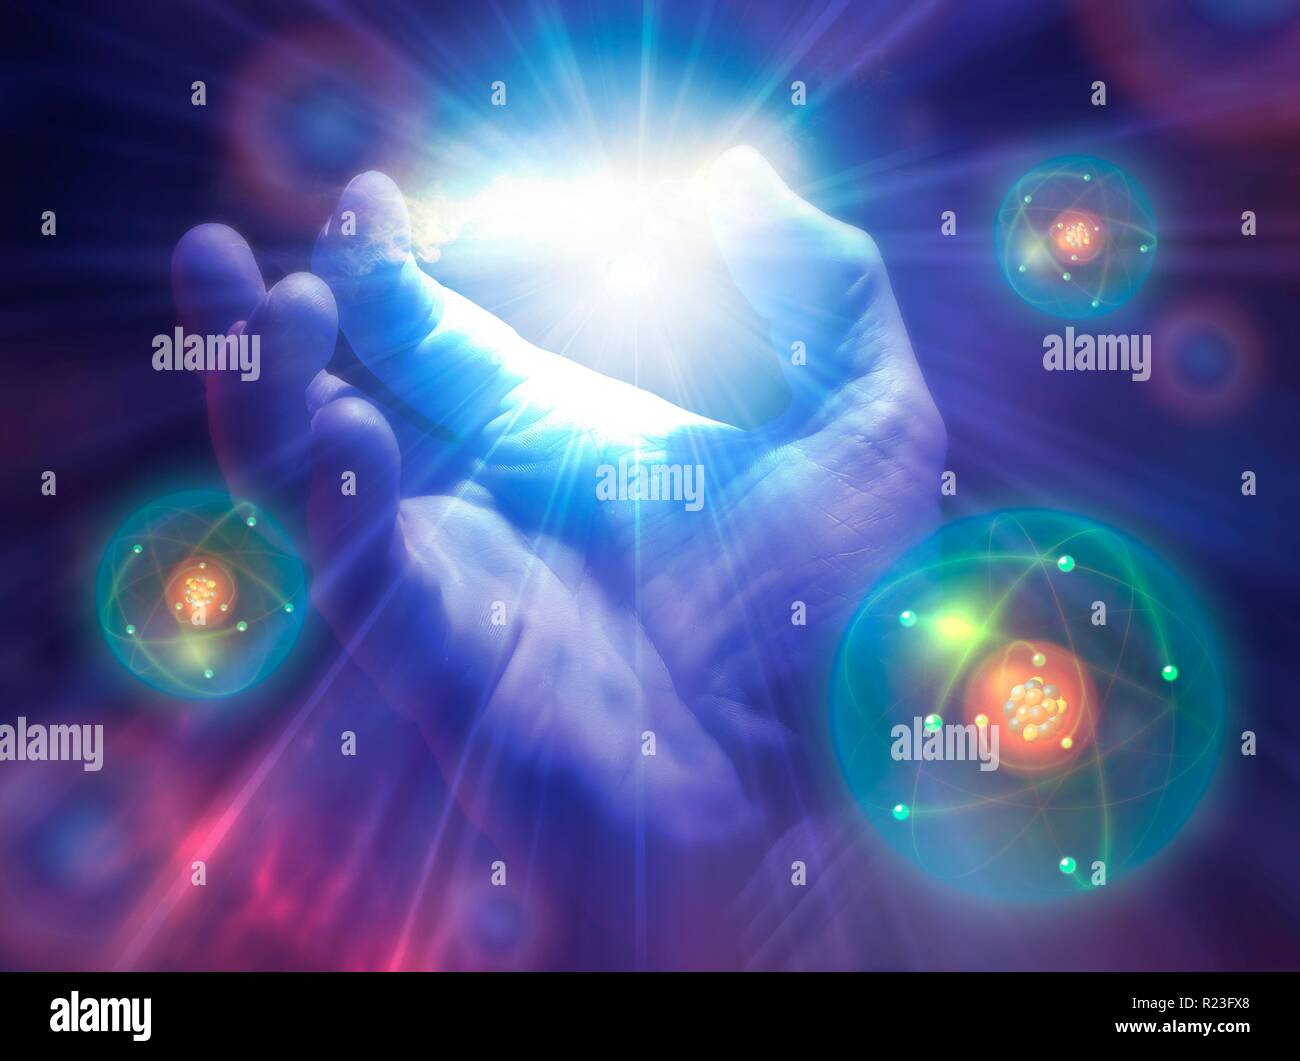 Conceptual illustration of creation. A hand is shown with light rays and atoms emanating from it. - Stock Image